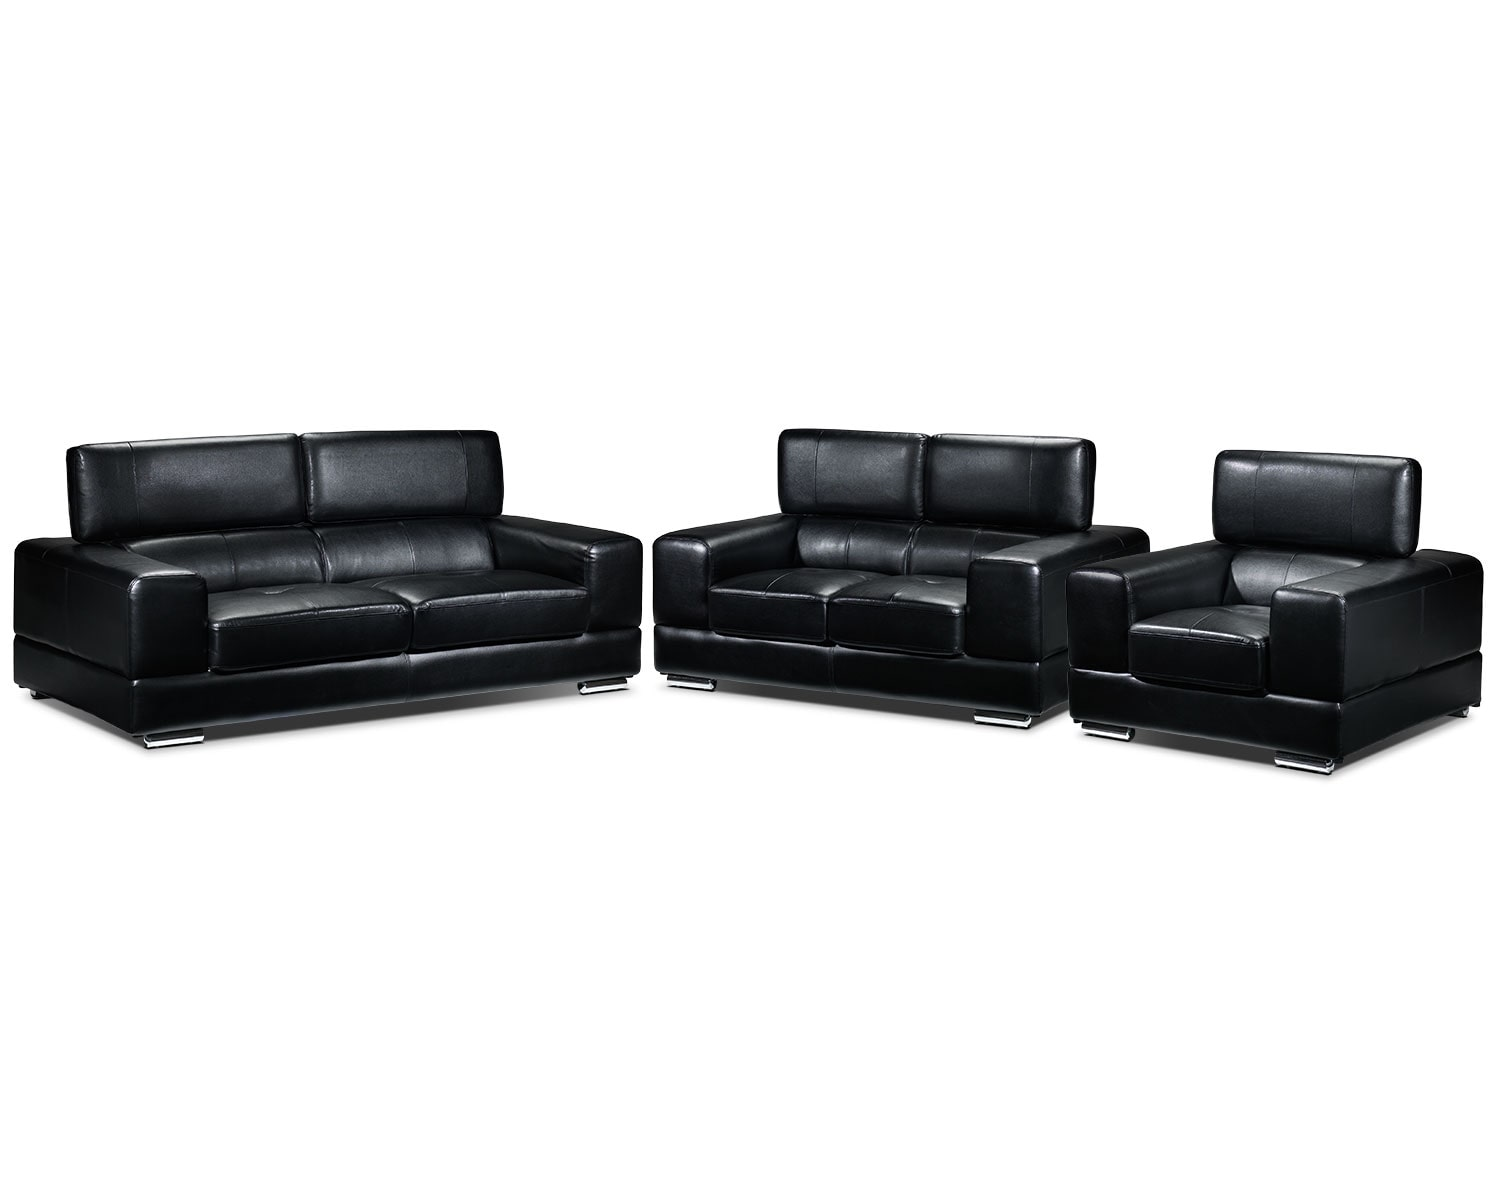 Driscoll Living Room Collection